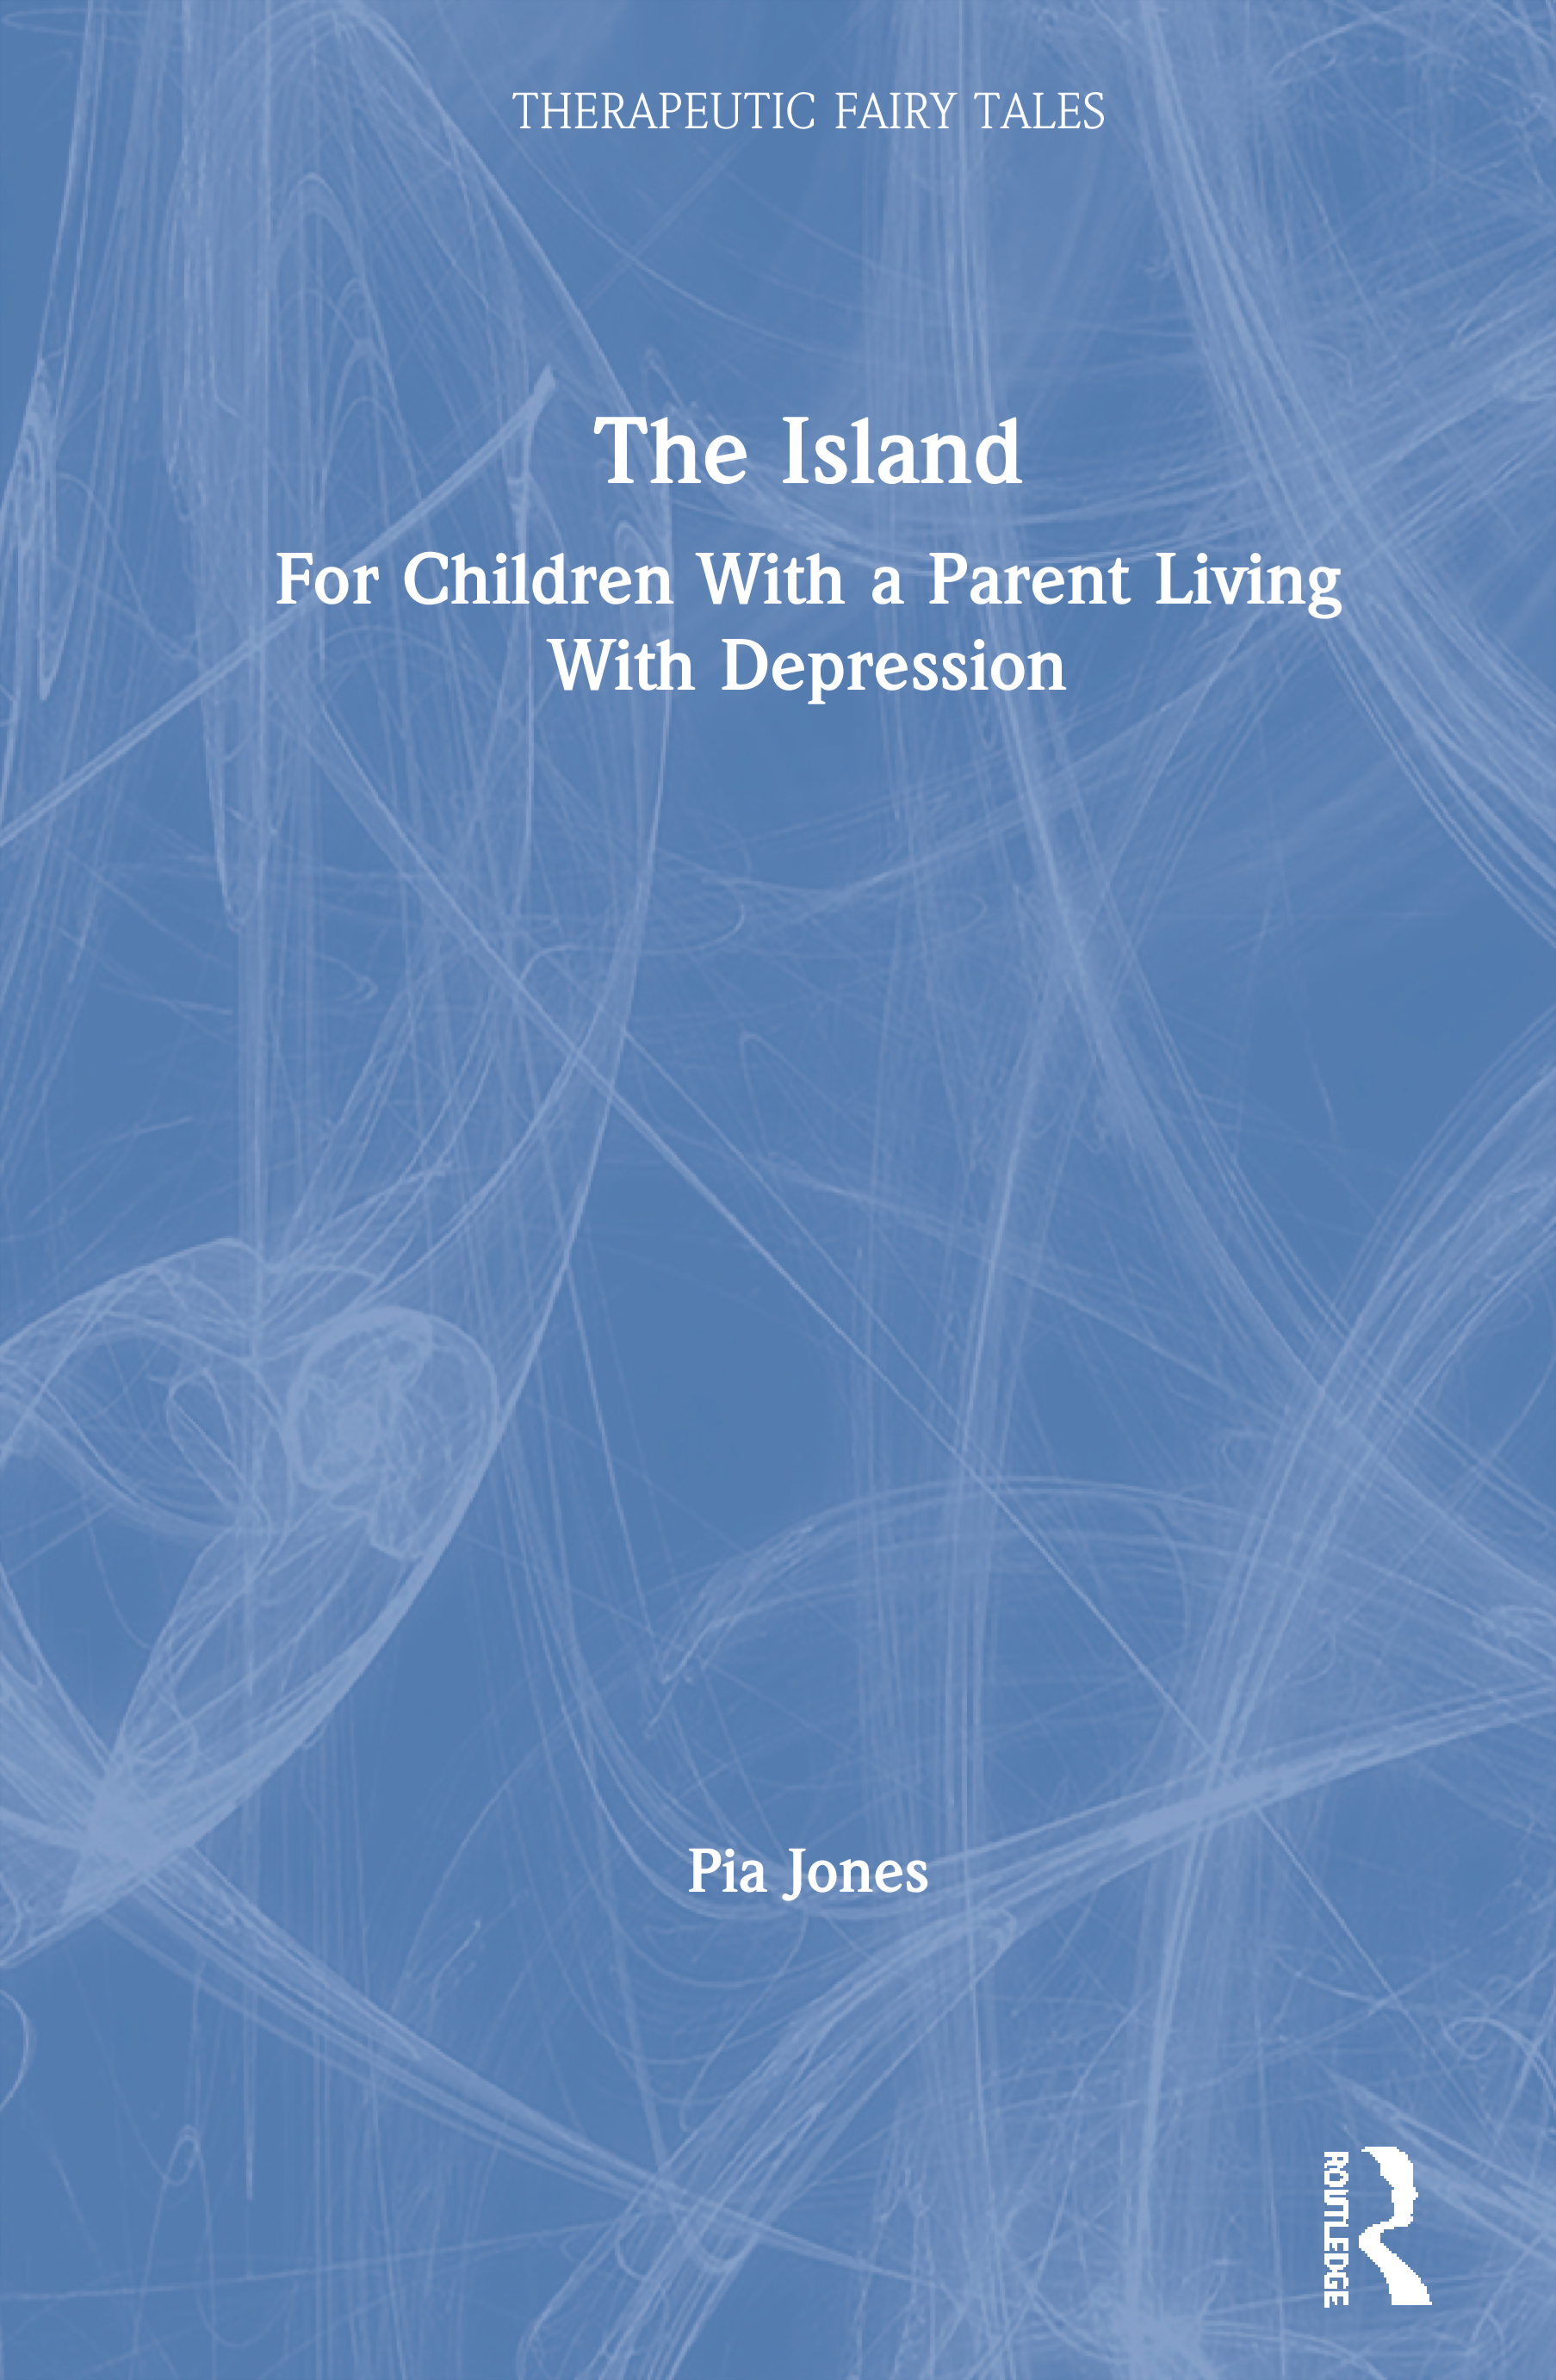 The Island: For Children With a Parent Living With Depression book cover